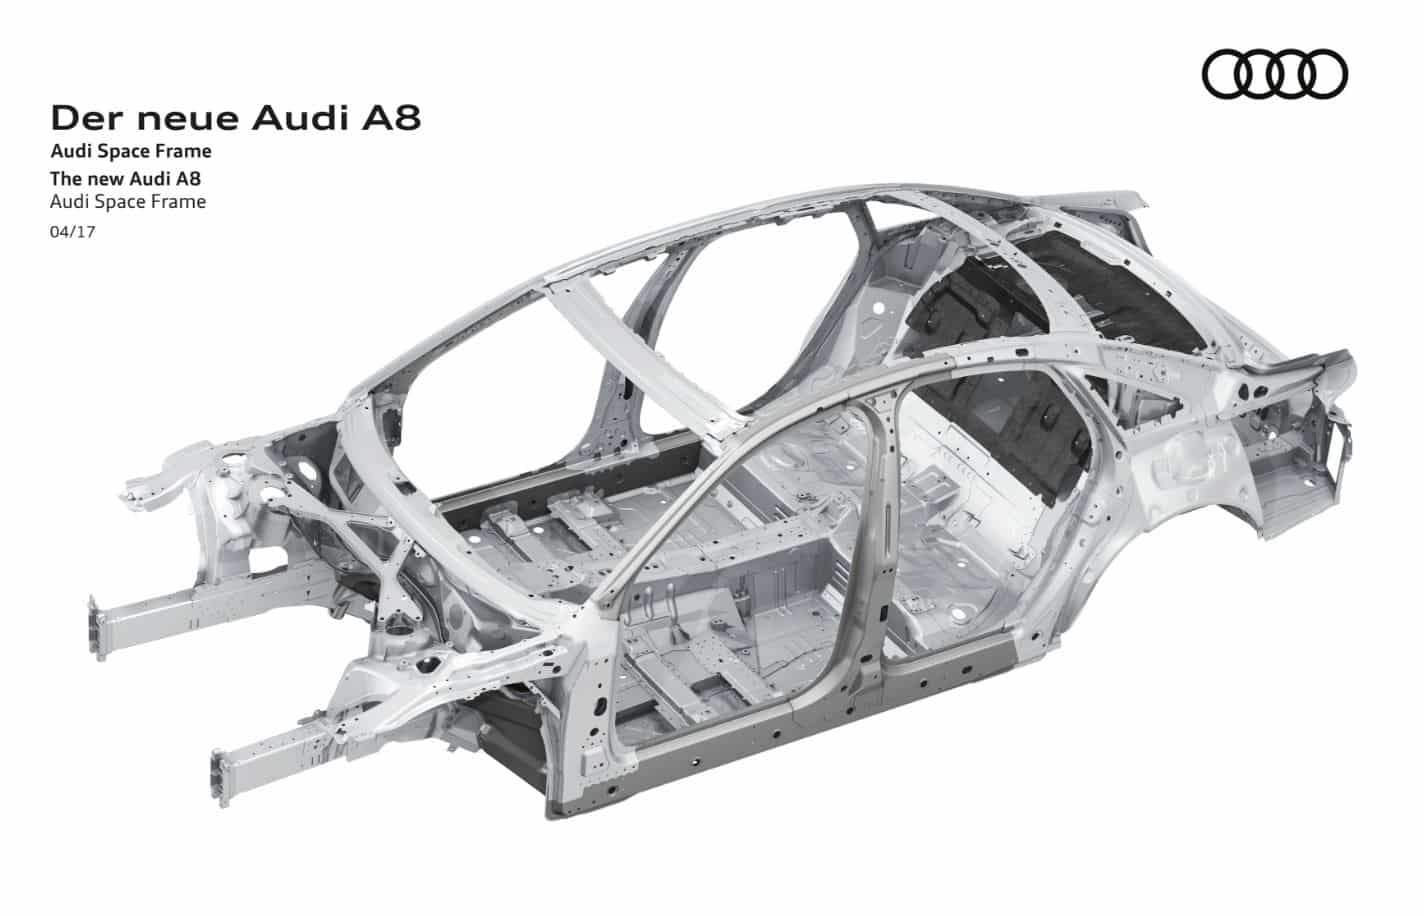 Audi A8 space frame 1